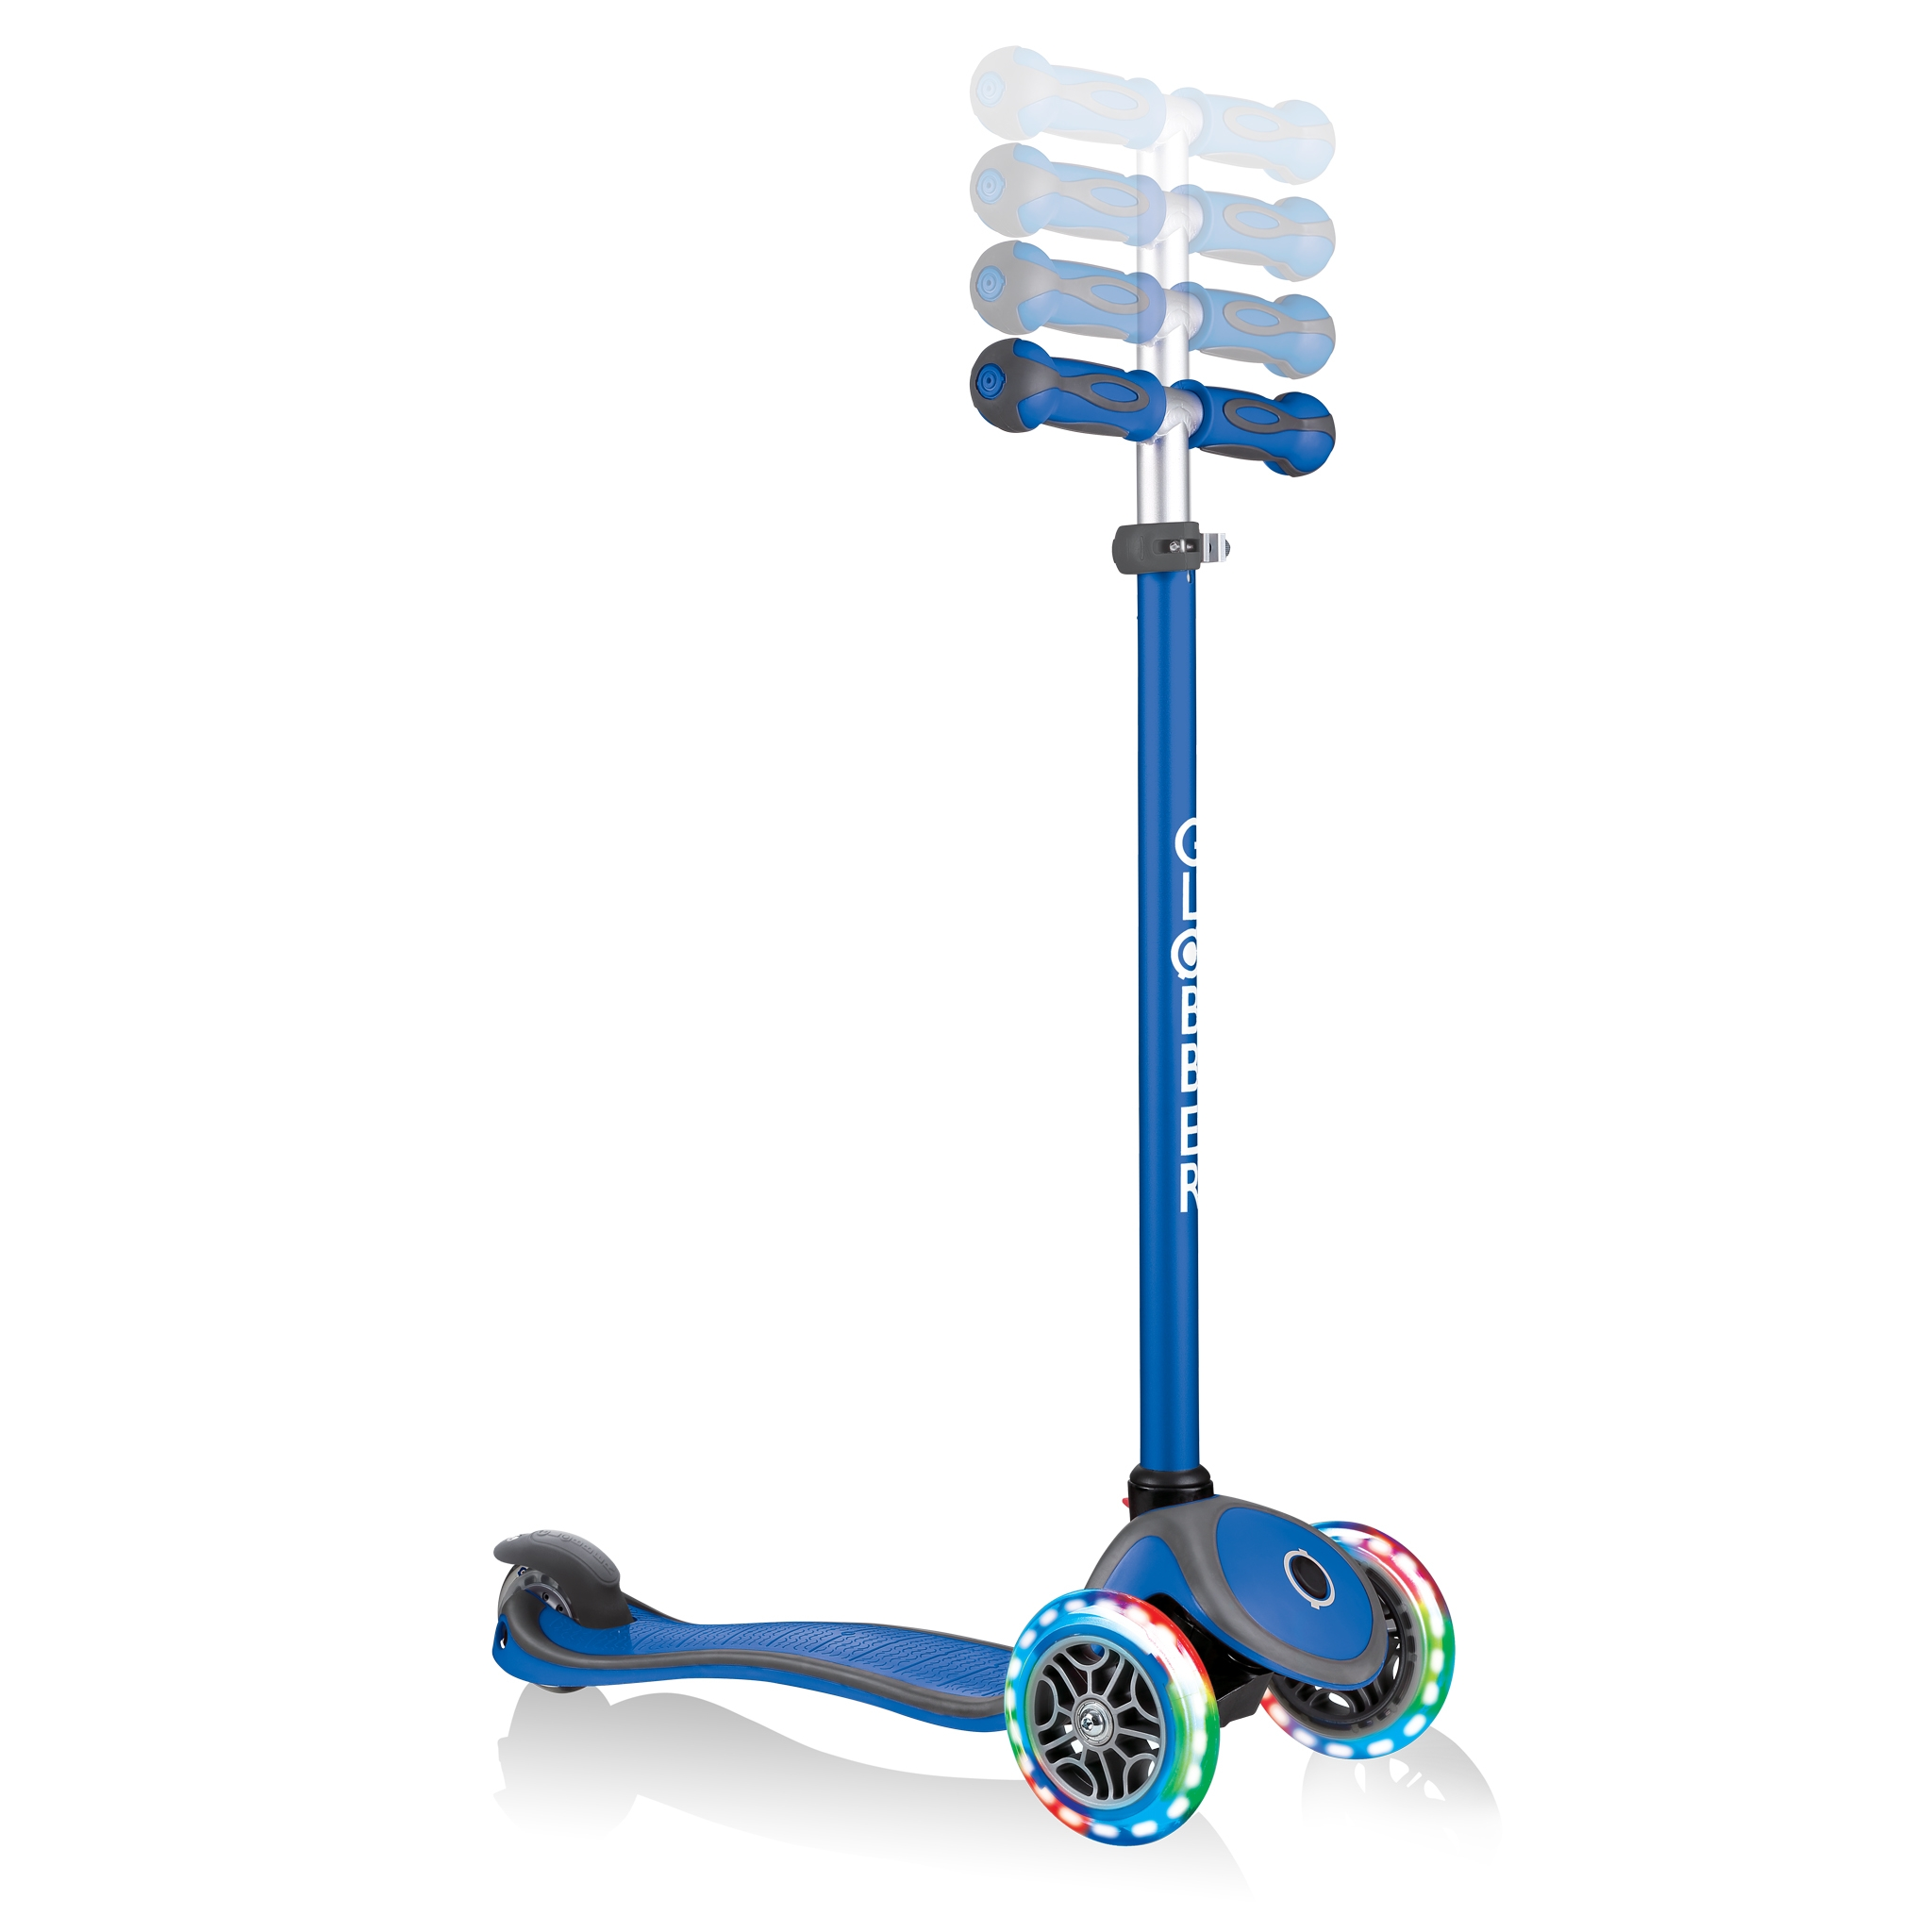 GO-UP-COMFORT-LIGHTS-scooter-with-seat-4-height-adjustable-T-bar-navy-blue